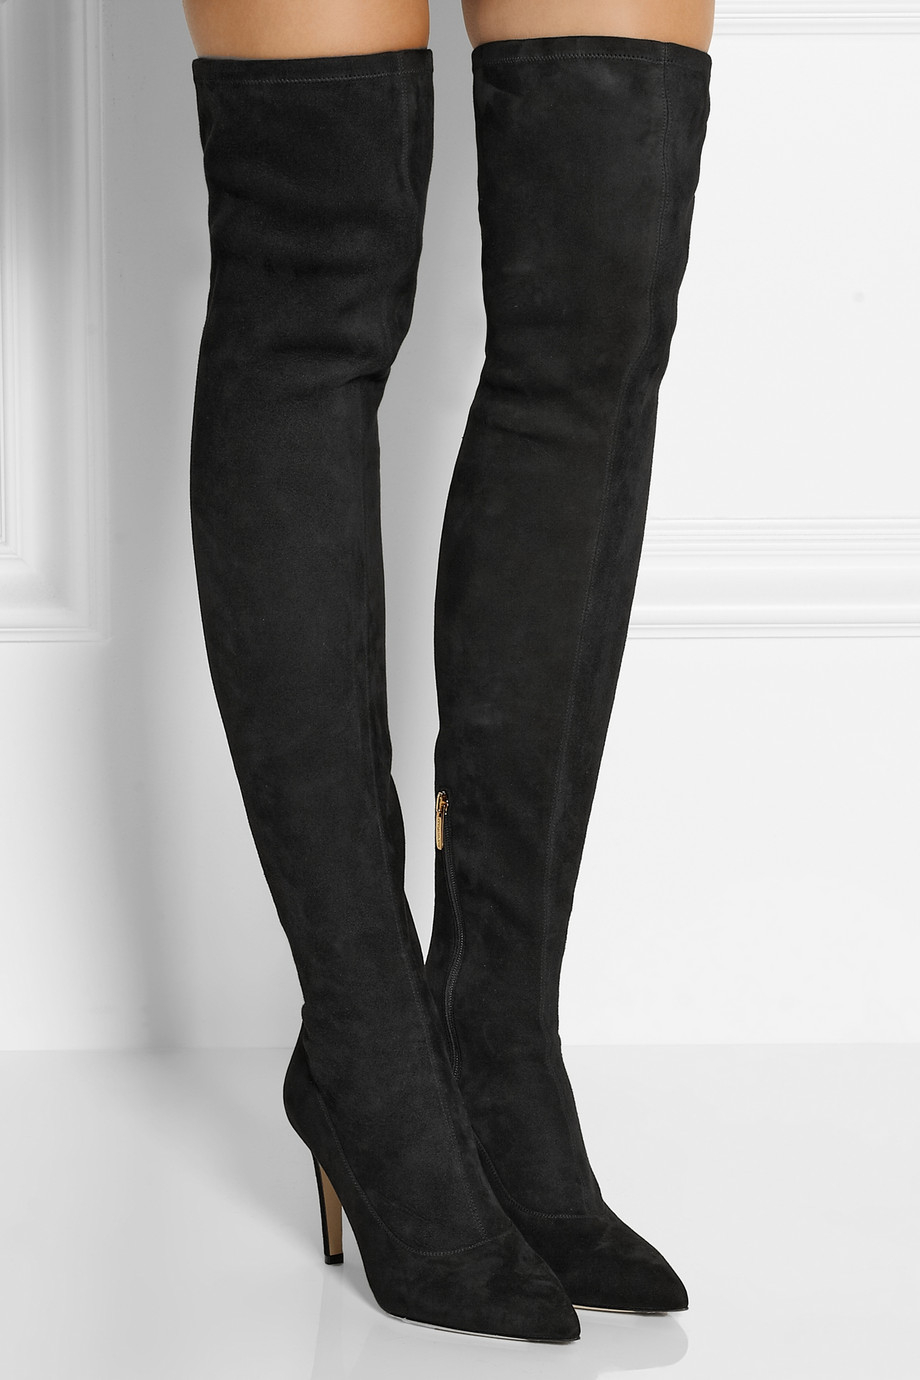 Sergio rossi Stretch-Suede Over-The-Knee Boots in Black | Lyst